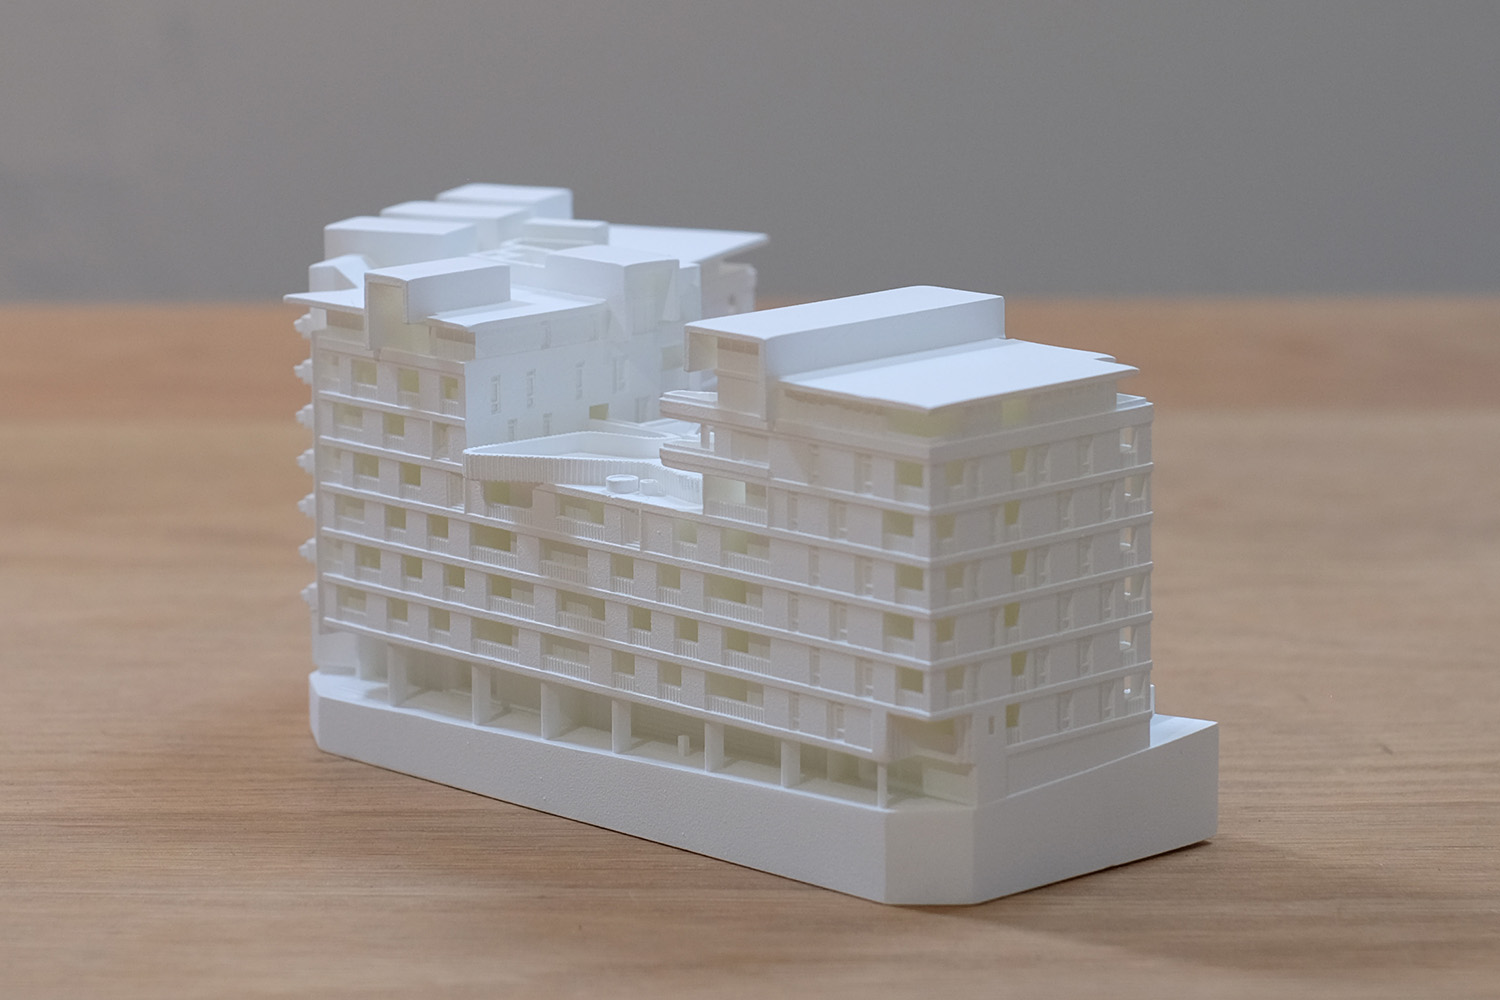 City of Sydney DA model 1_500 City West Housing Glebe 1.jpg